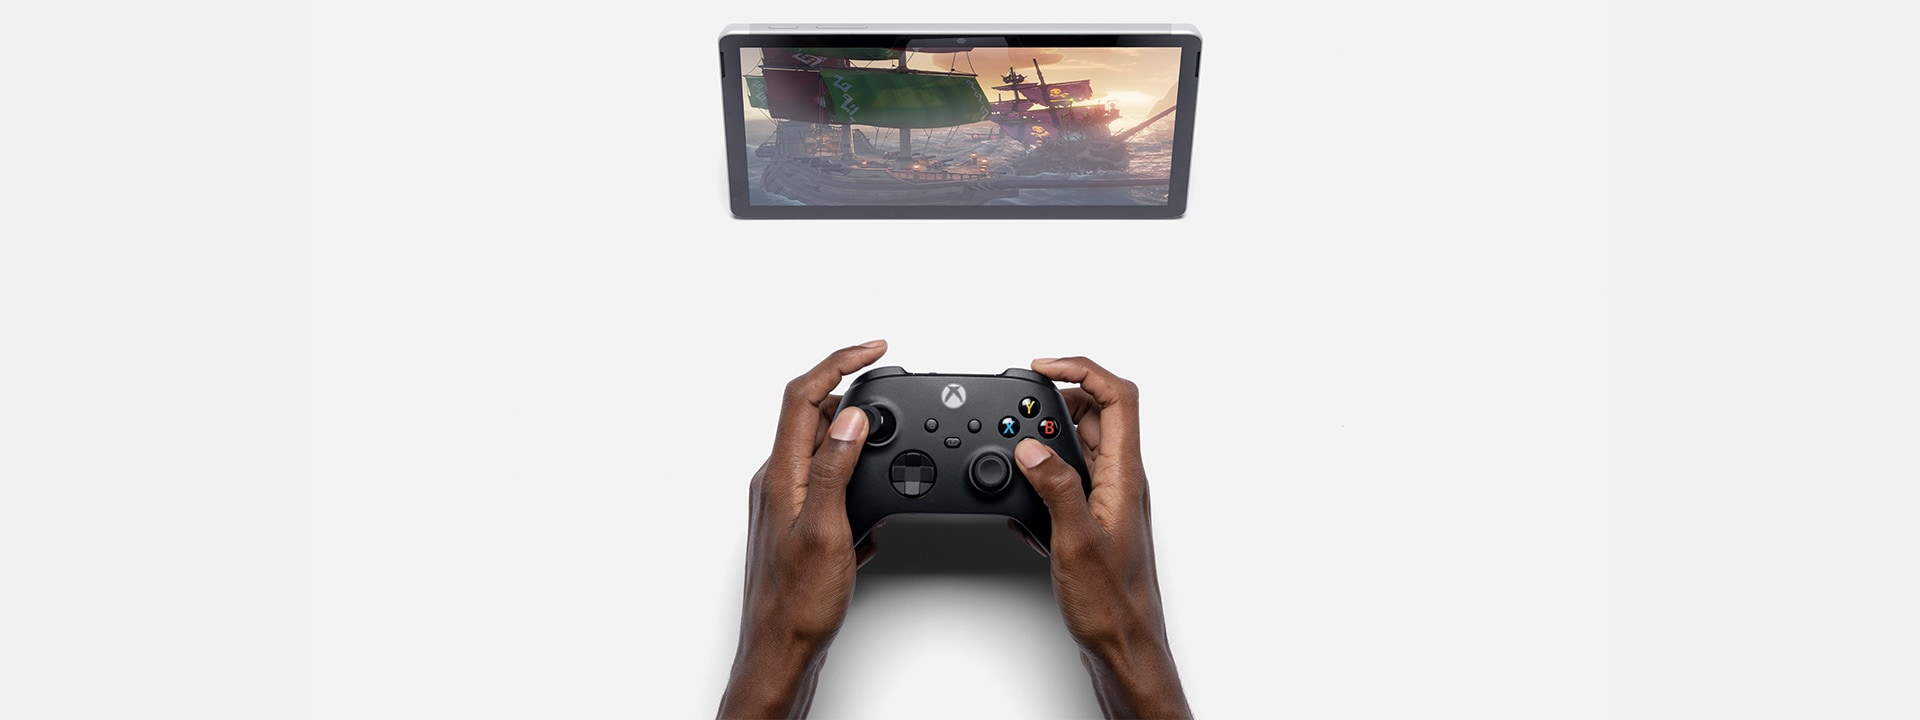 Surface Go 3 shown in kickstand mode with Xbox controller and Xbox app.